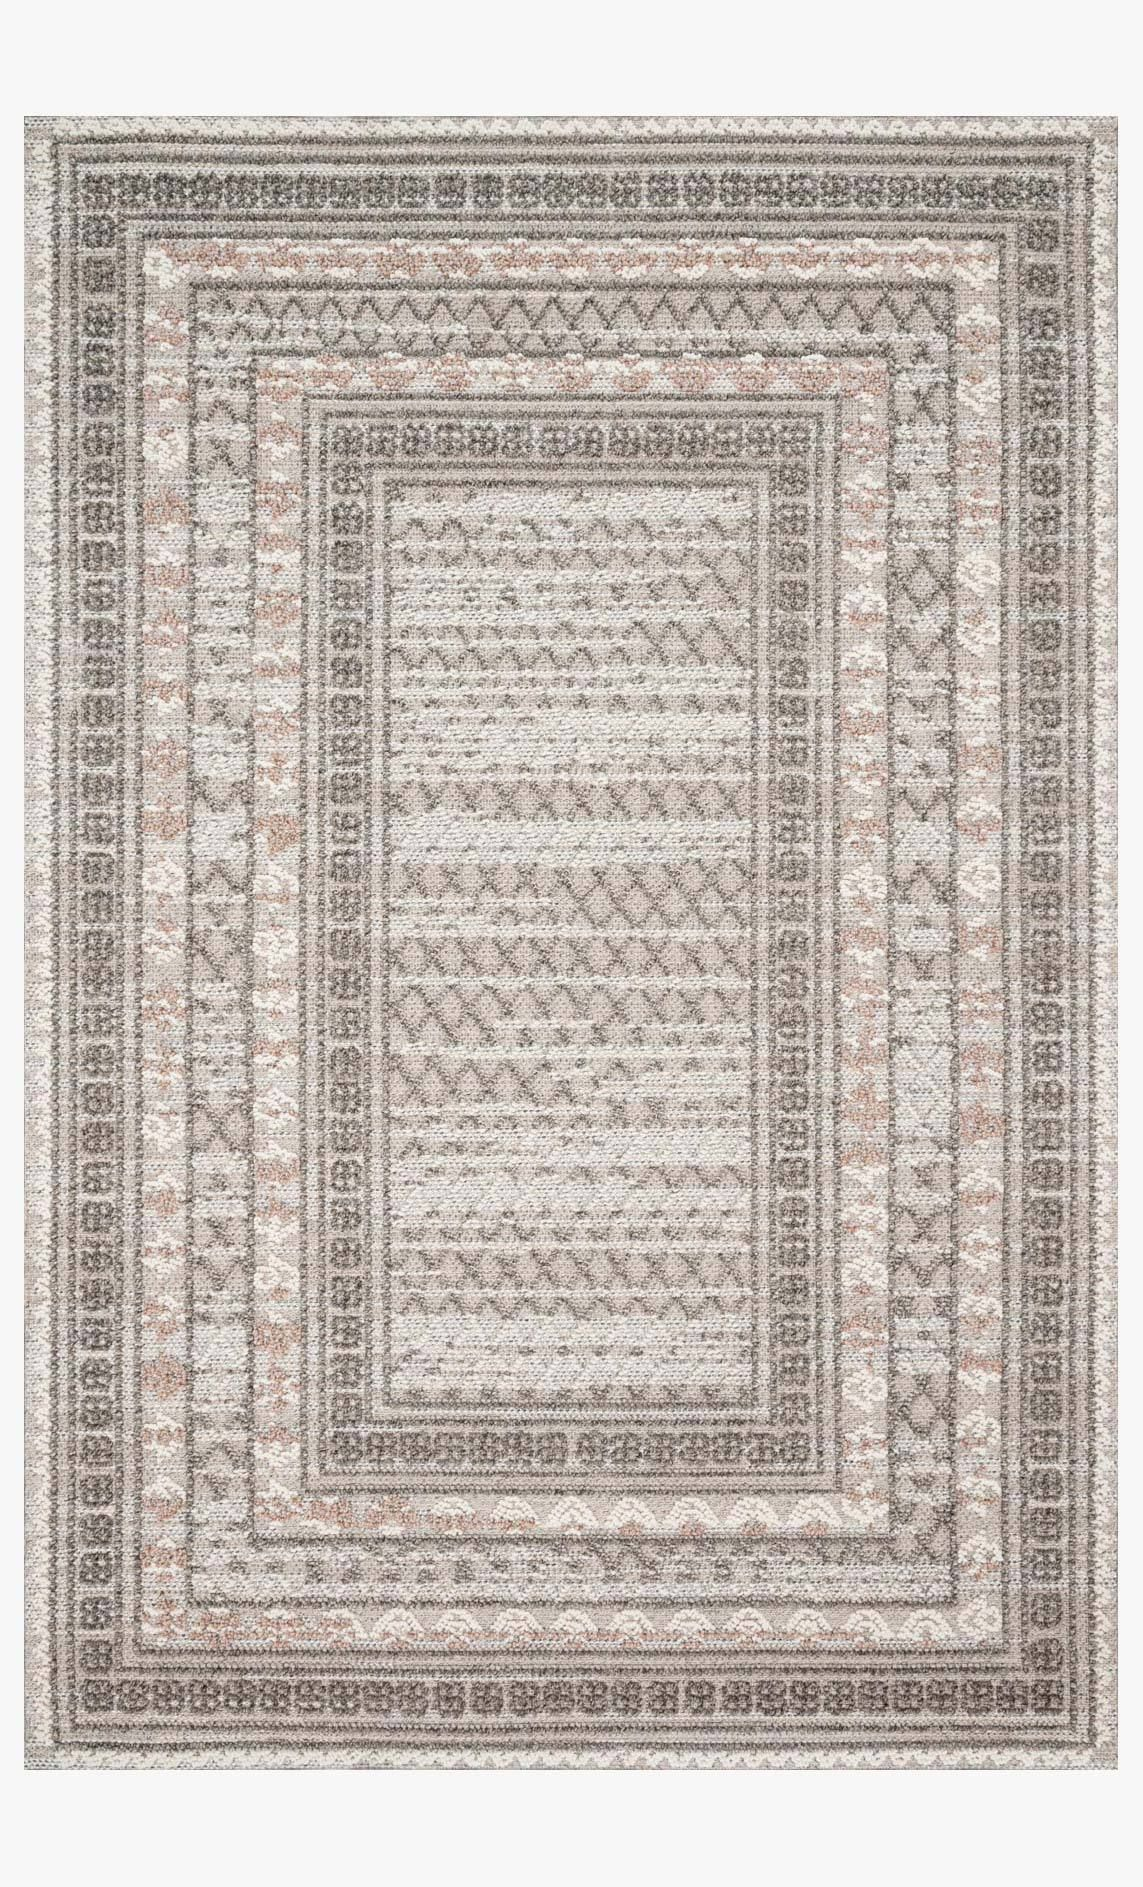 Cole Grey Multi Rug Size 7 10 X 10 1 In 2020 Rugs Neutral Area Rugs